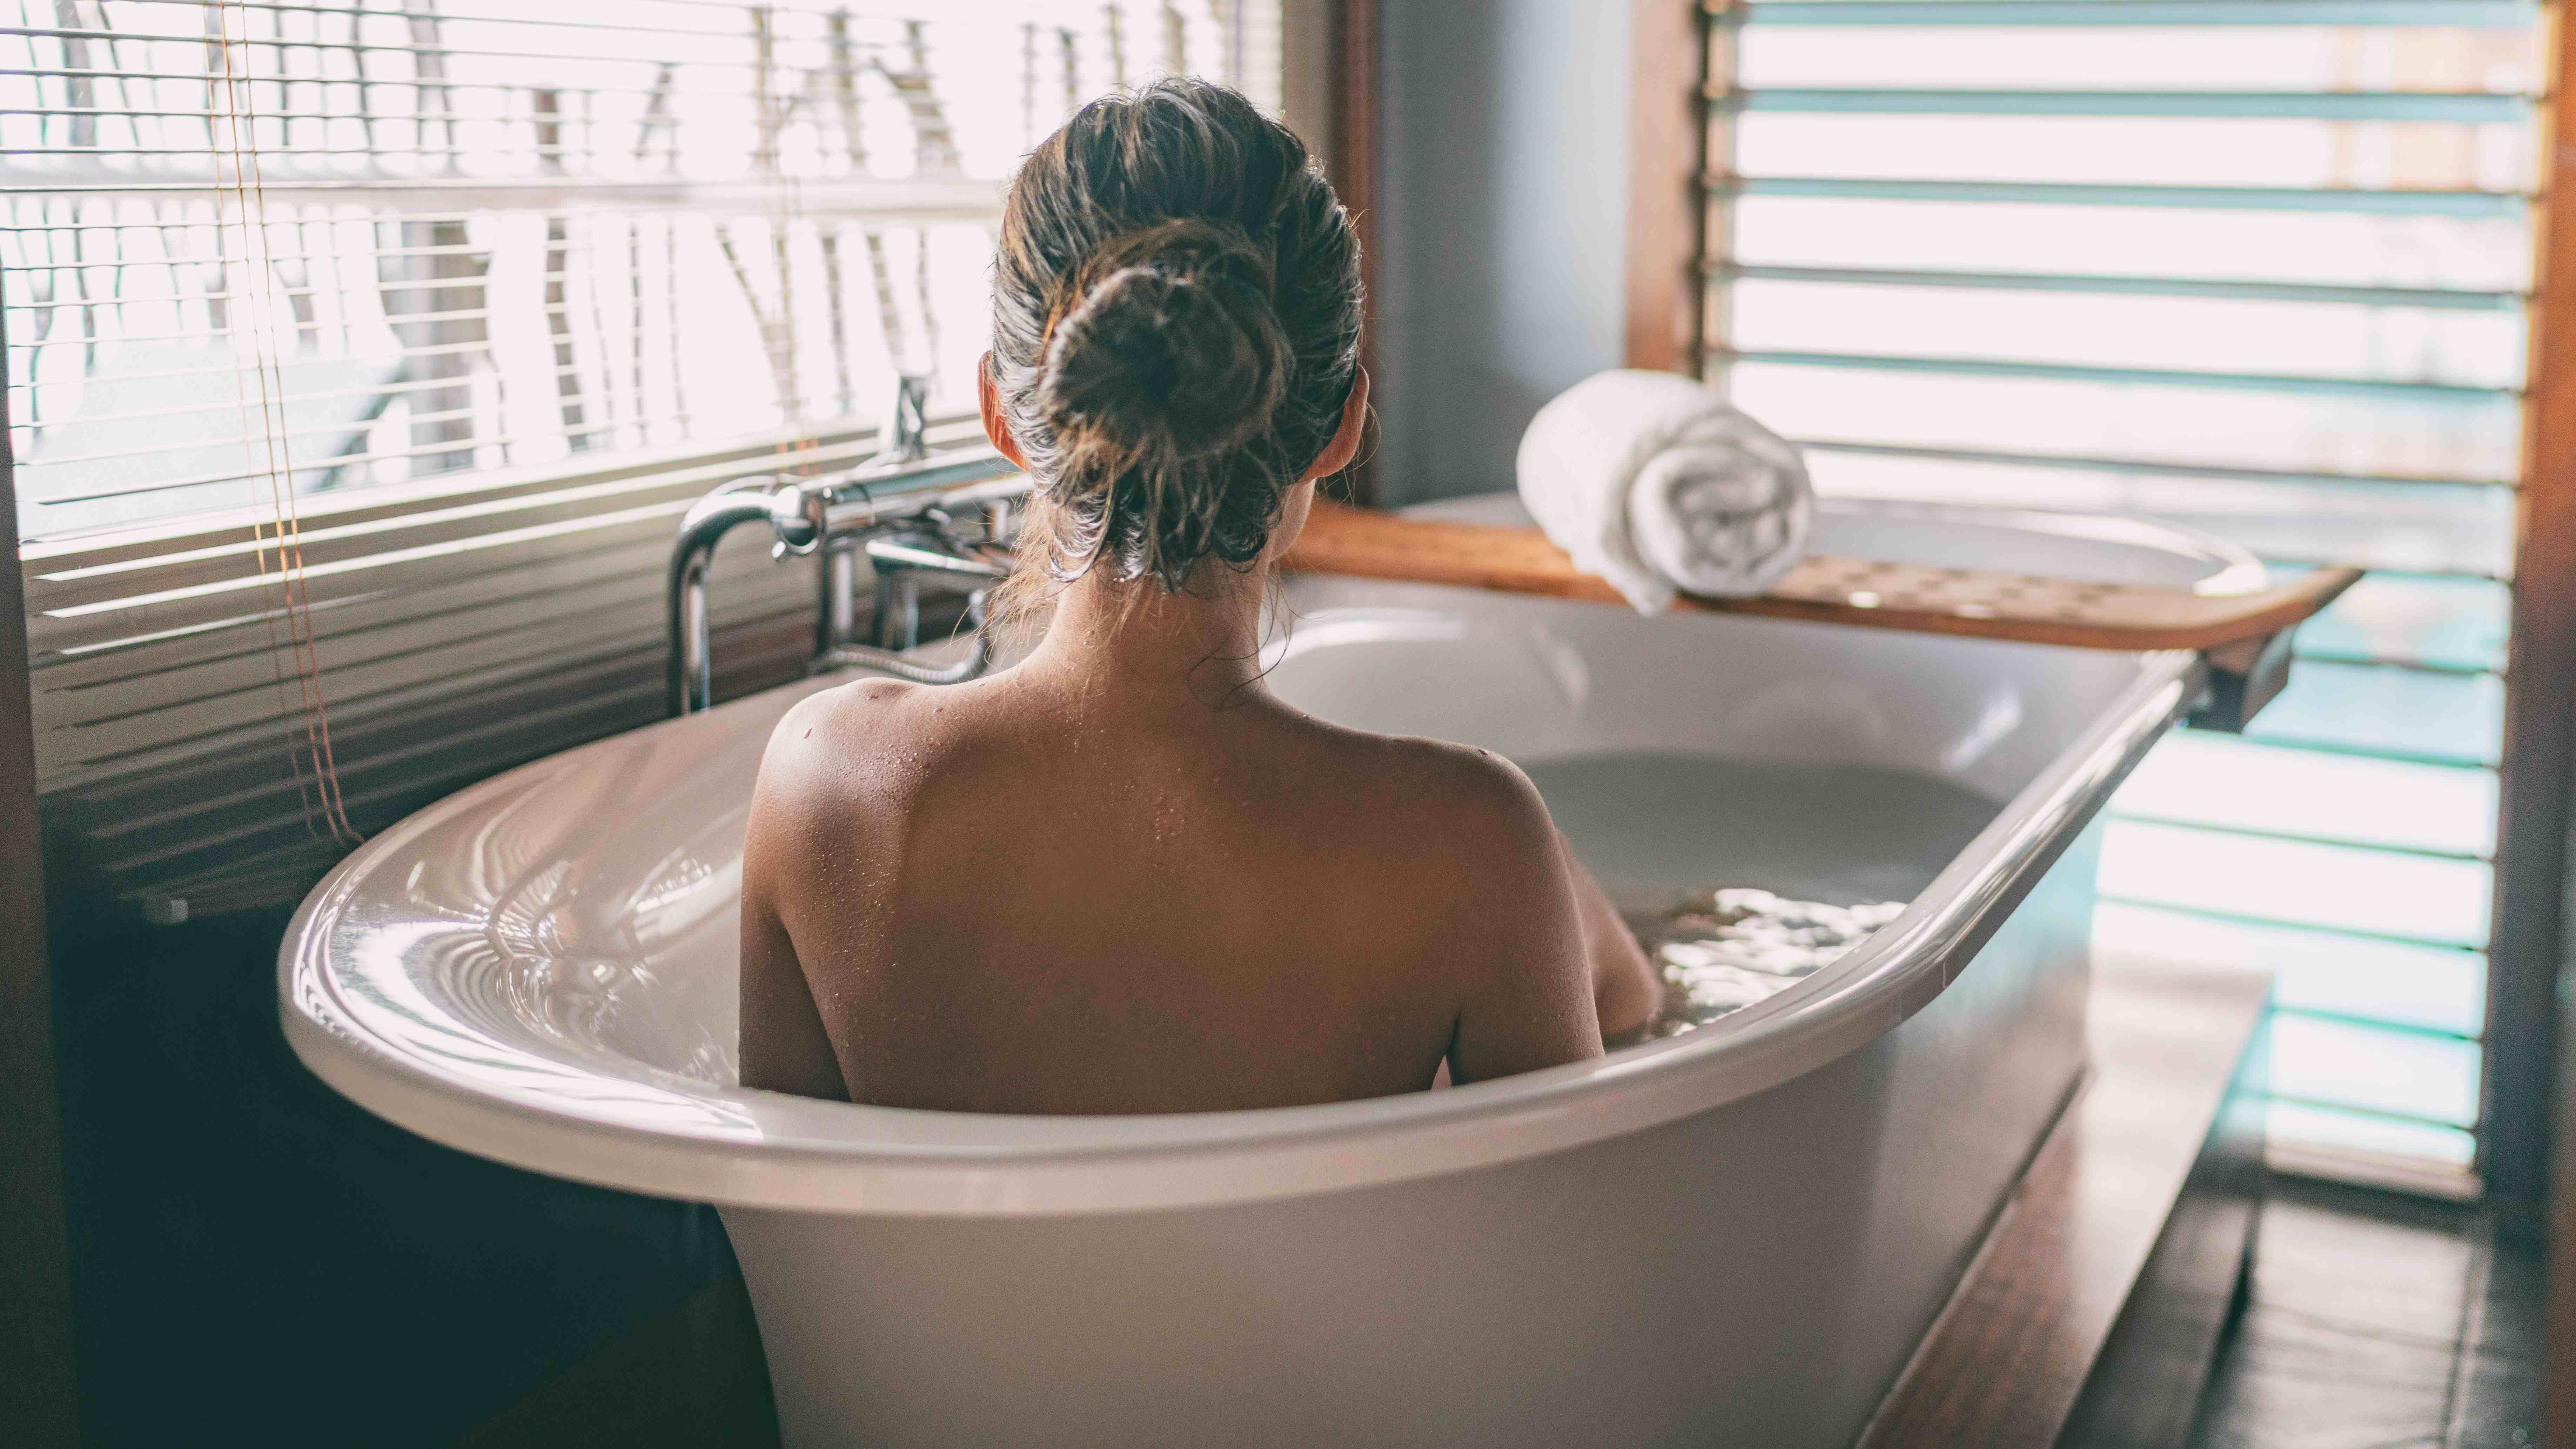 Shower or bath:  which is right for you?